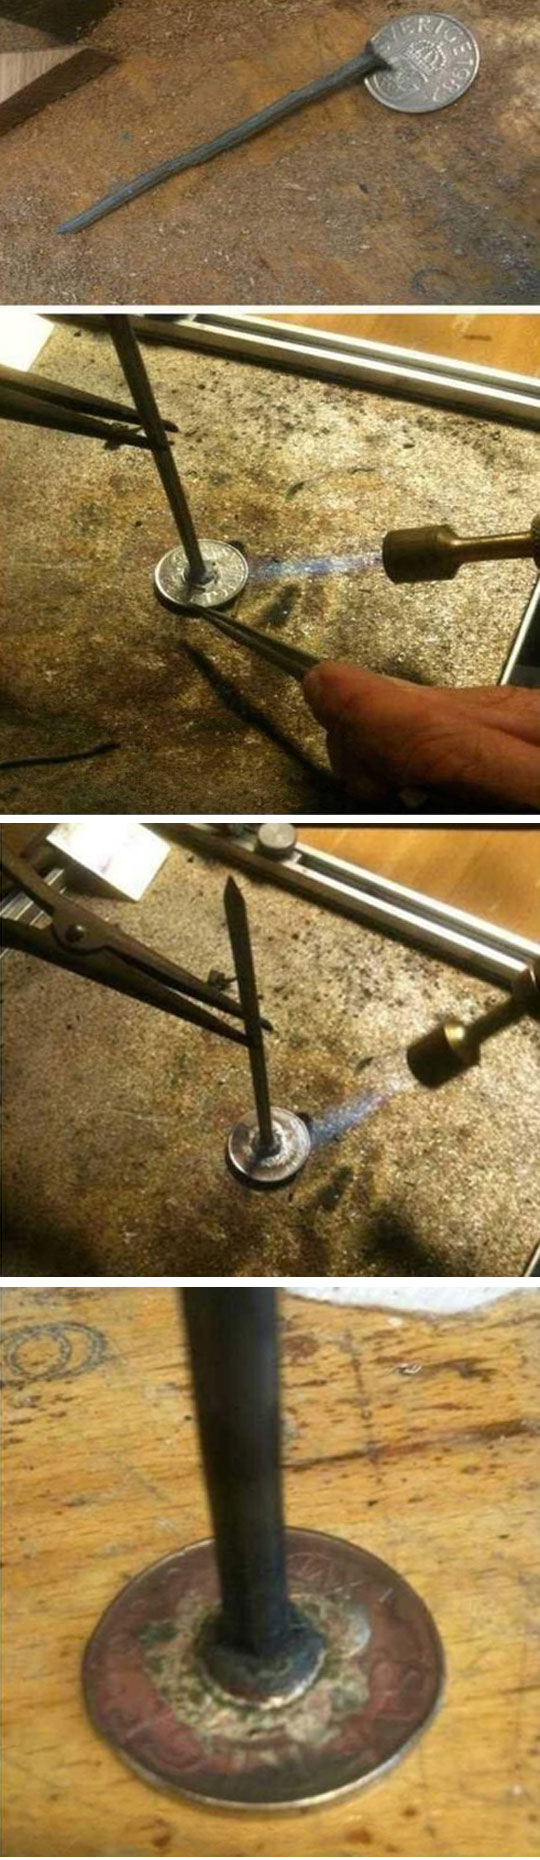 funny-coin-prank-weld